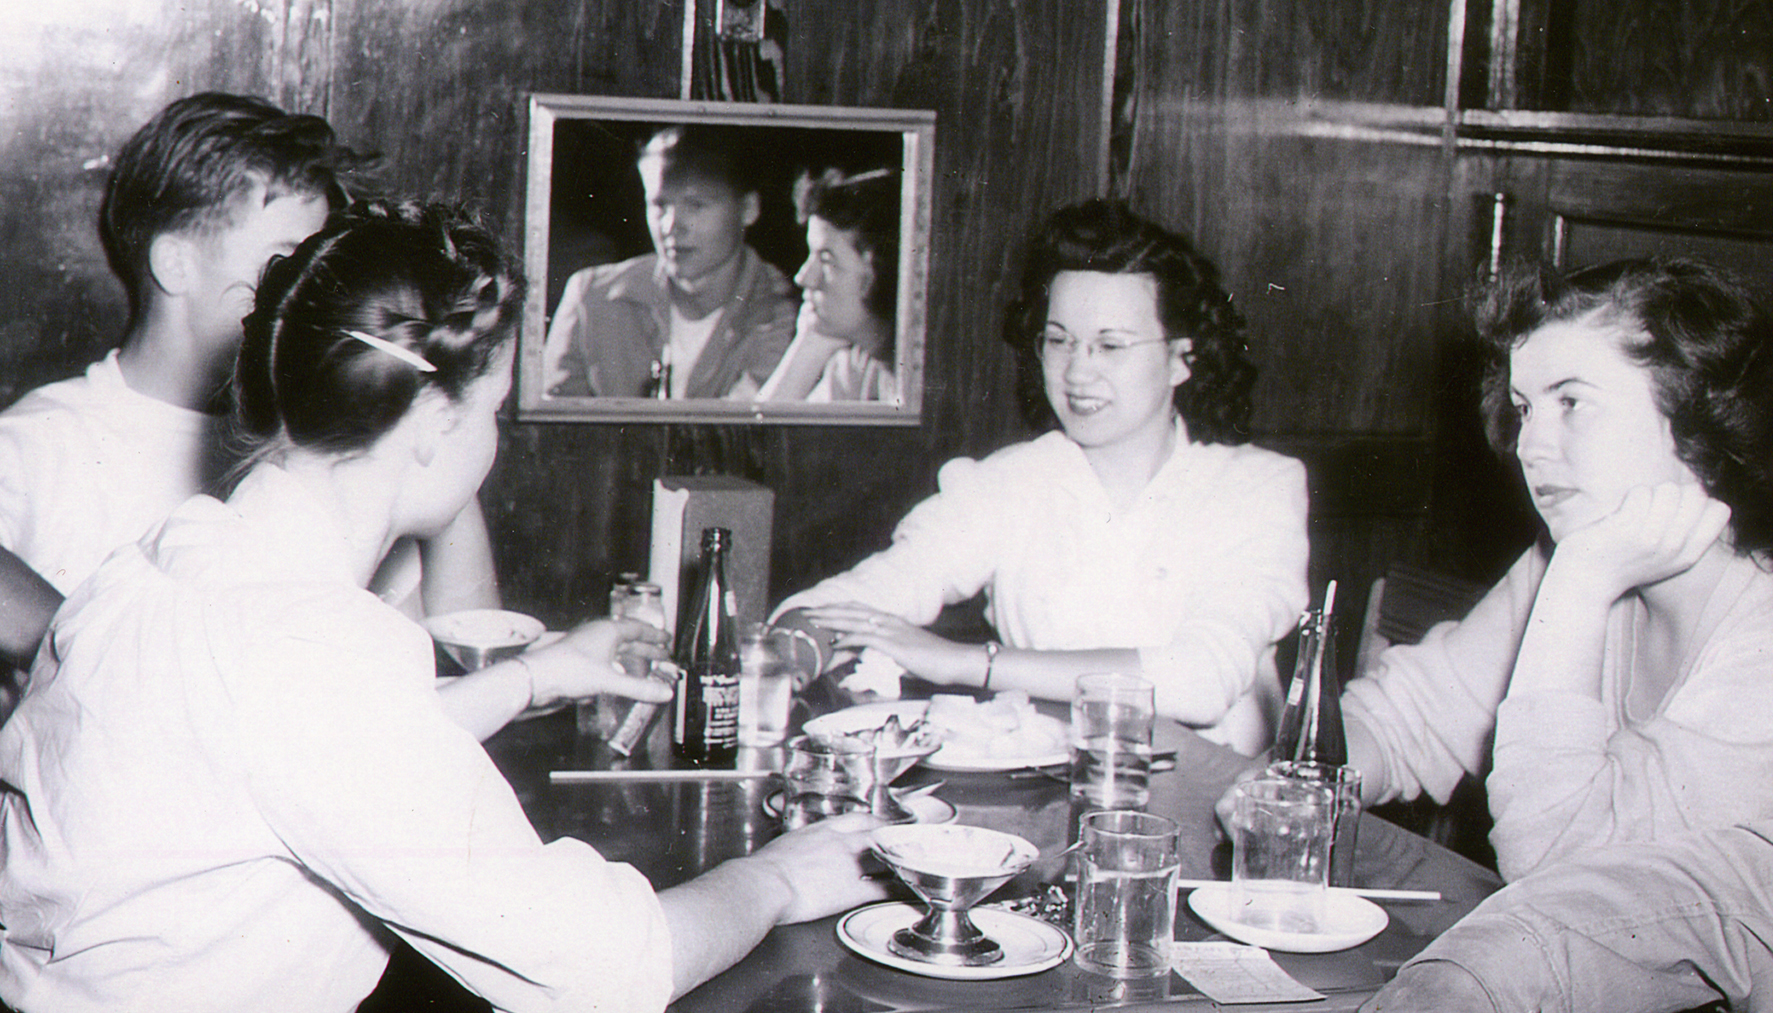 Teenagers in a Club Café booth, 1944